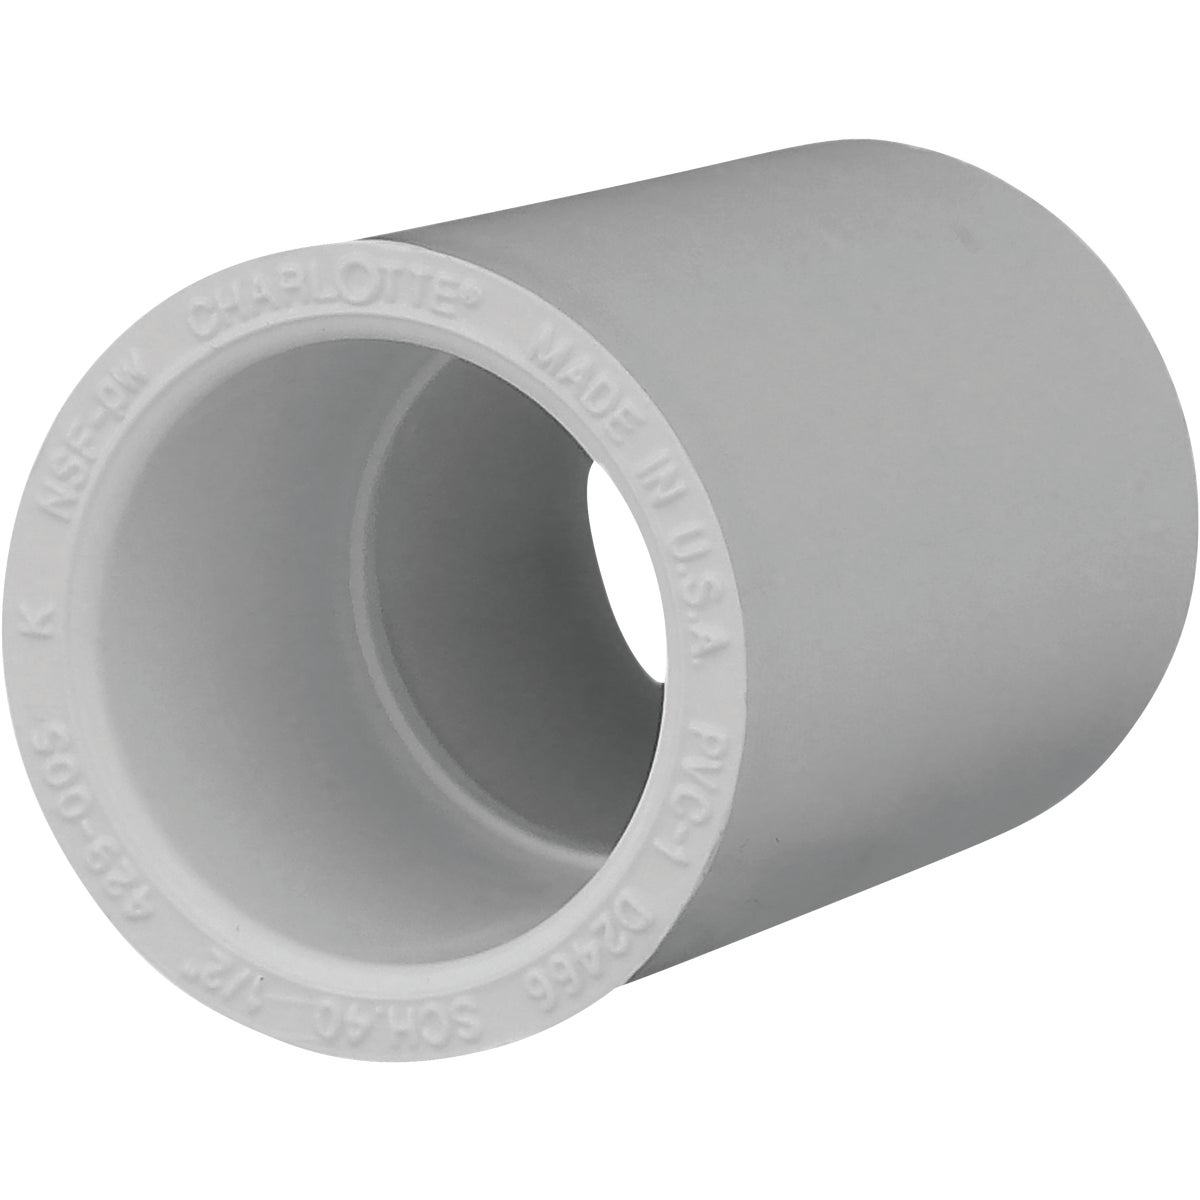 "10PK 1/2"" SCH40 PVC CPLG"